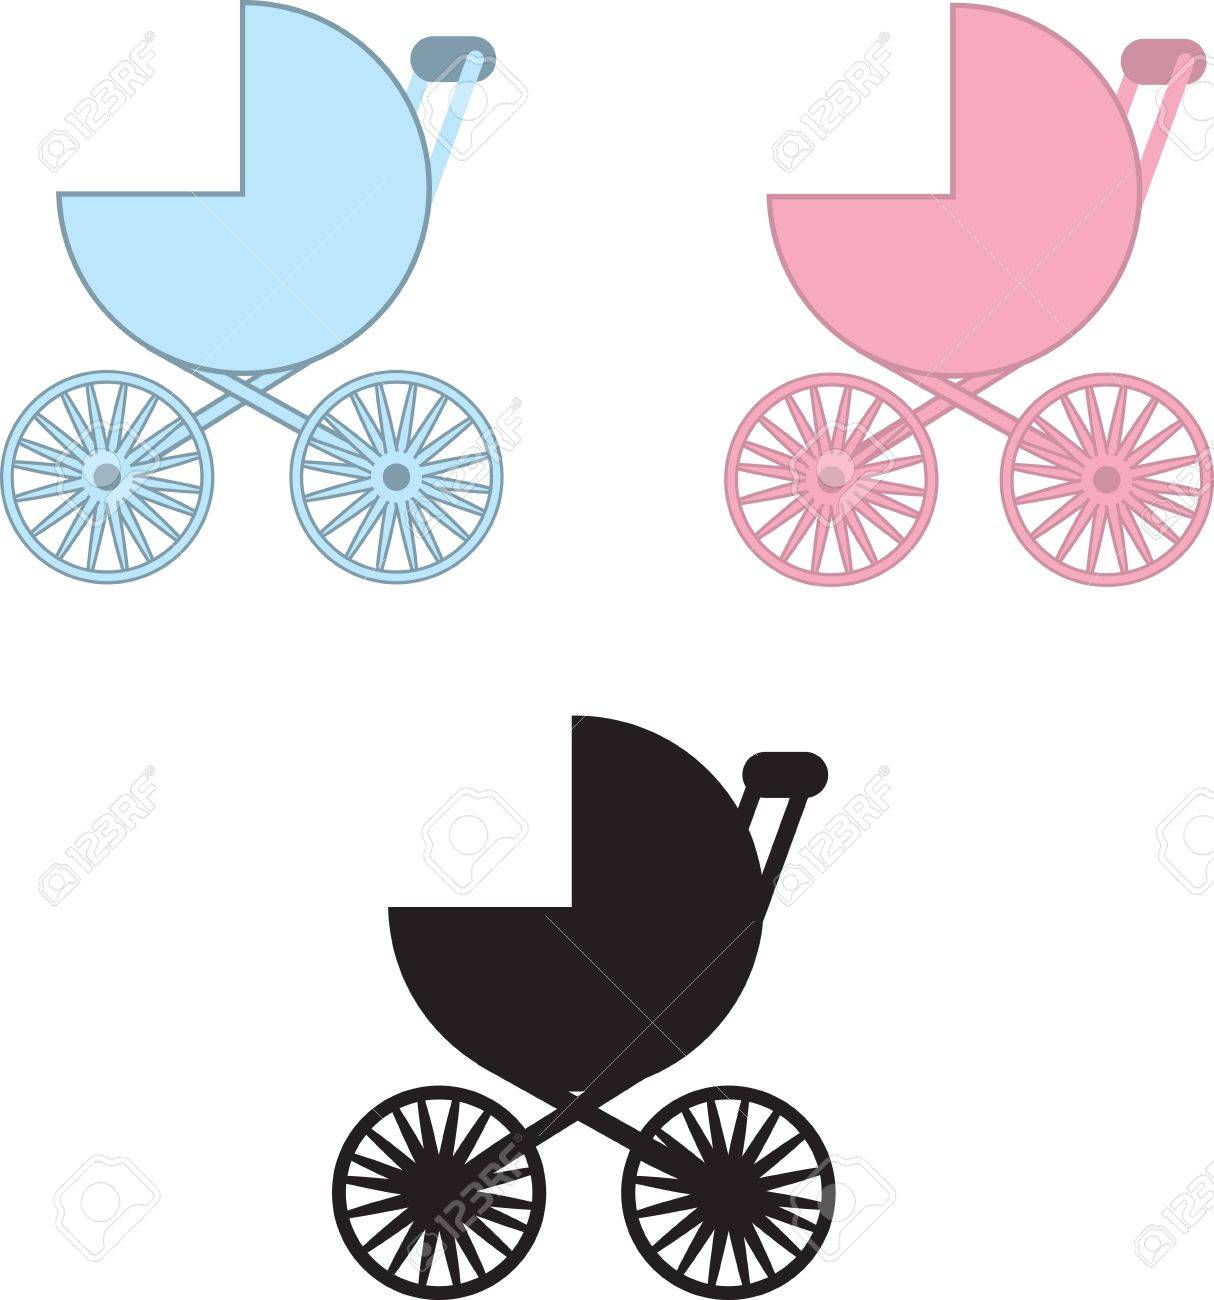 Isolated baby carriages in blue, pink and black silhouette Stock Vector - 15032634